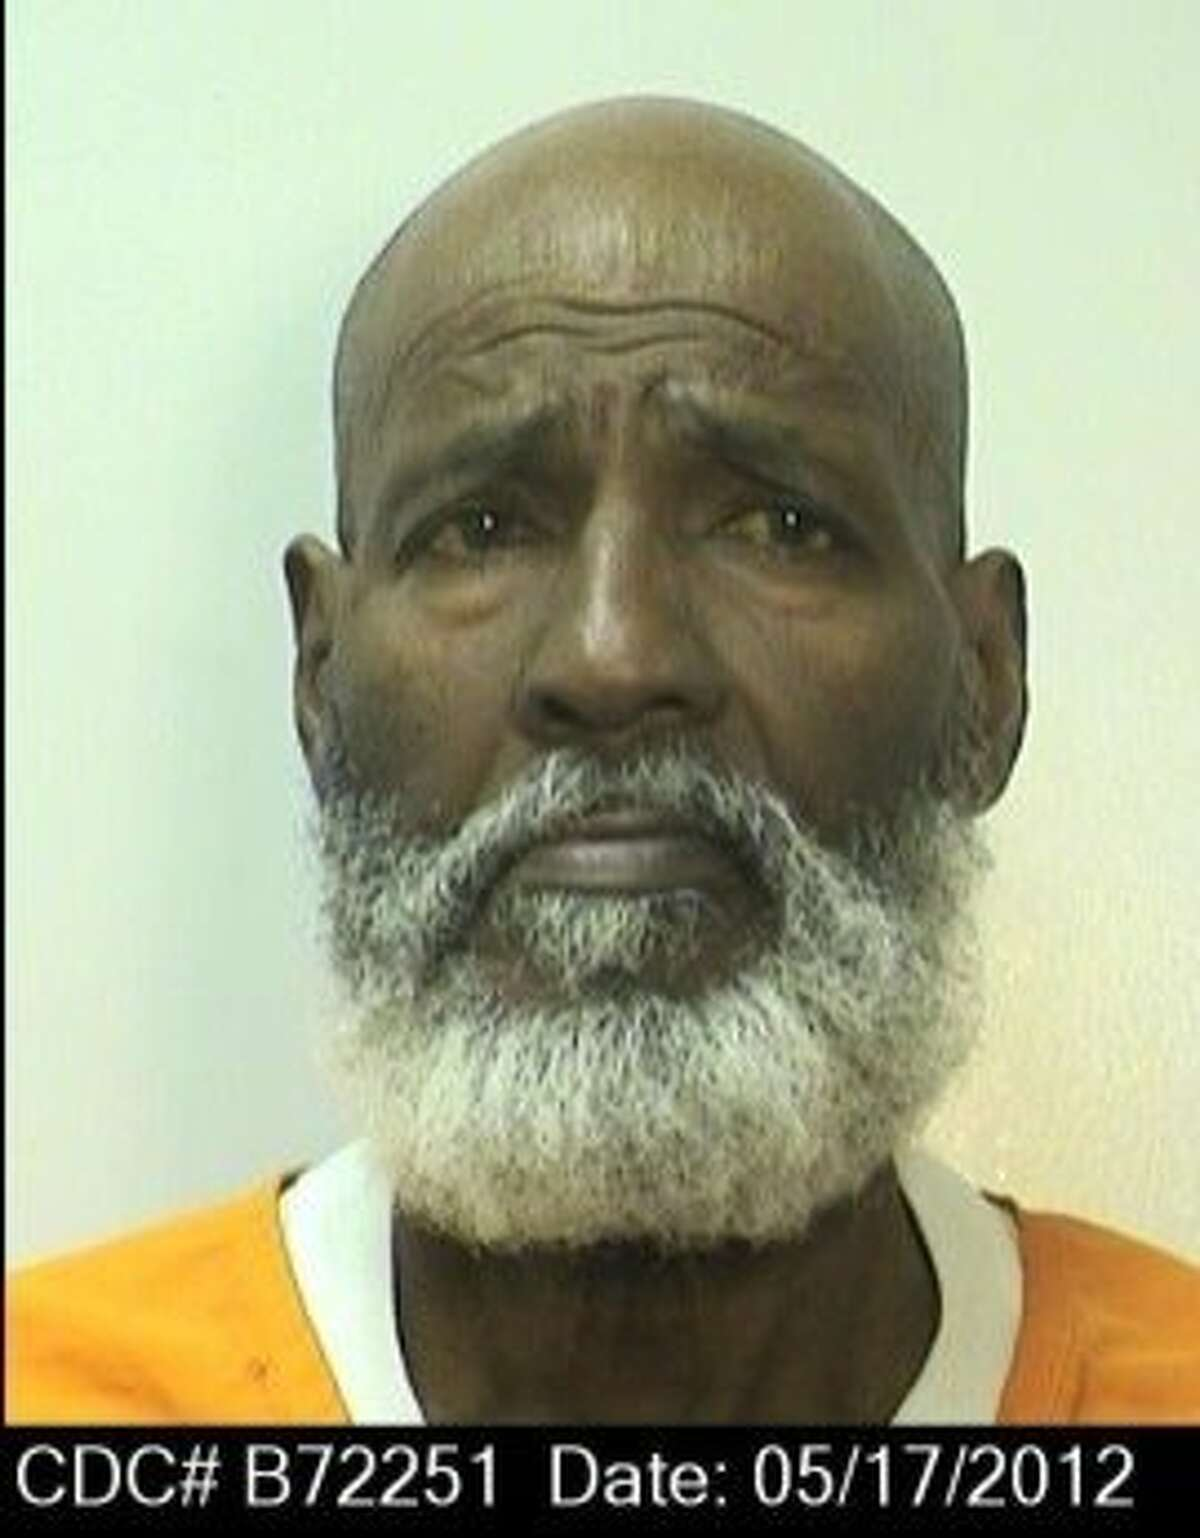 Inmate J.C.X. Simon, 69, was found unresponsive in his cell late Thursday night. He was pronounced dead at the prison at 11:59 p.m. March 12, 2015. The cause of death is unknown pending the results of an autopsy.To see other infamous Bay Area crimes, keep clicking on the slideshow.